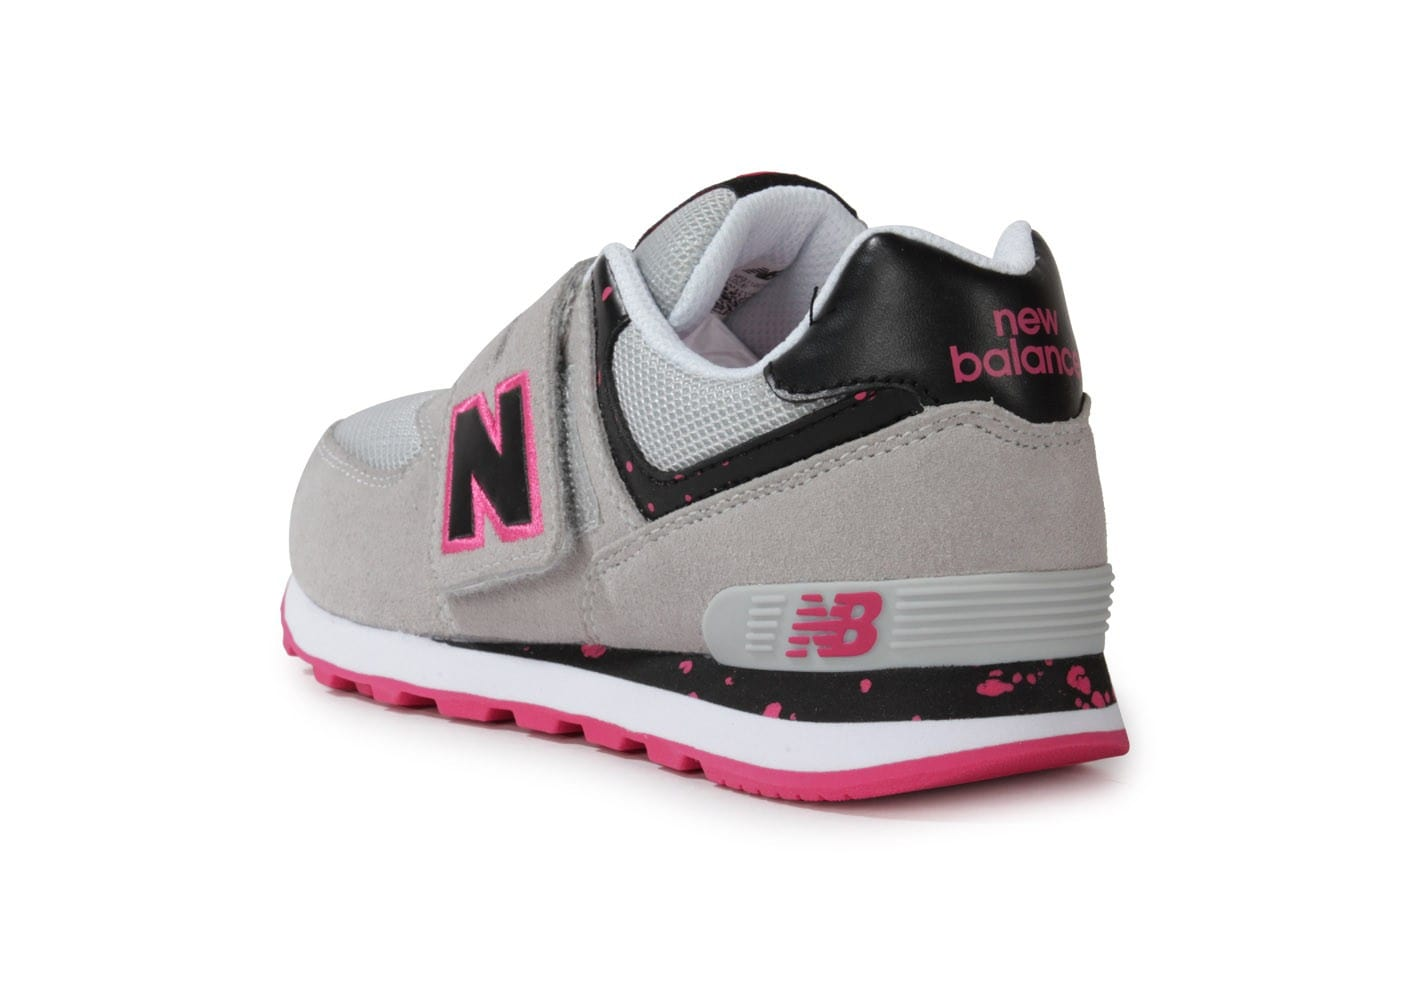 Balance Kg574 Rose Psy New Chaussures Gris Chausport 8wfxdqH